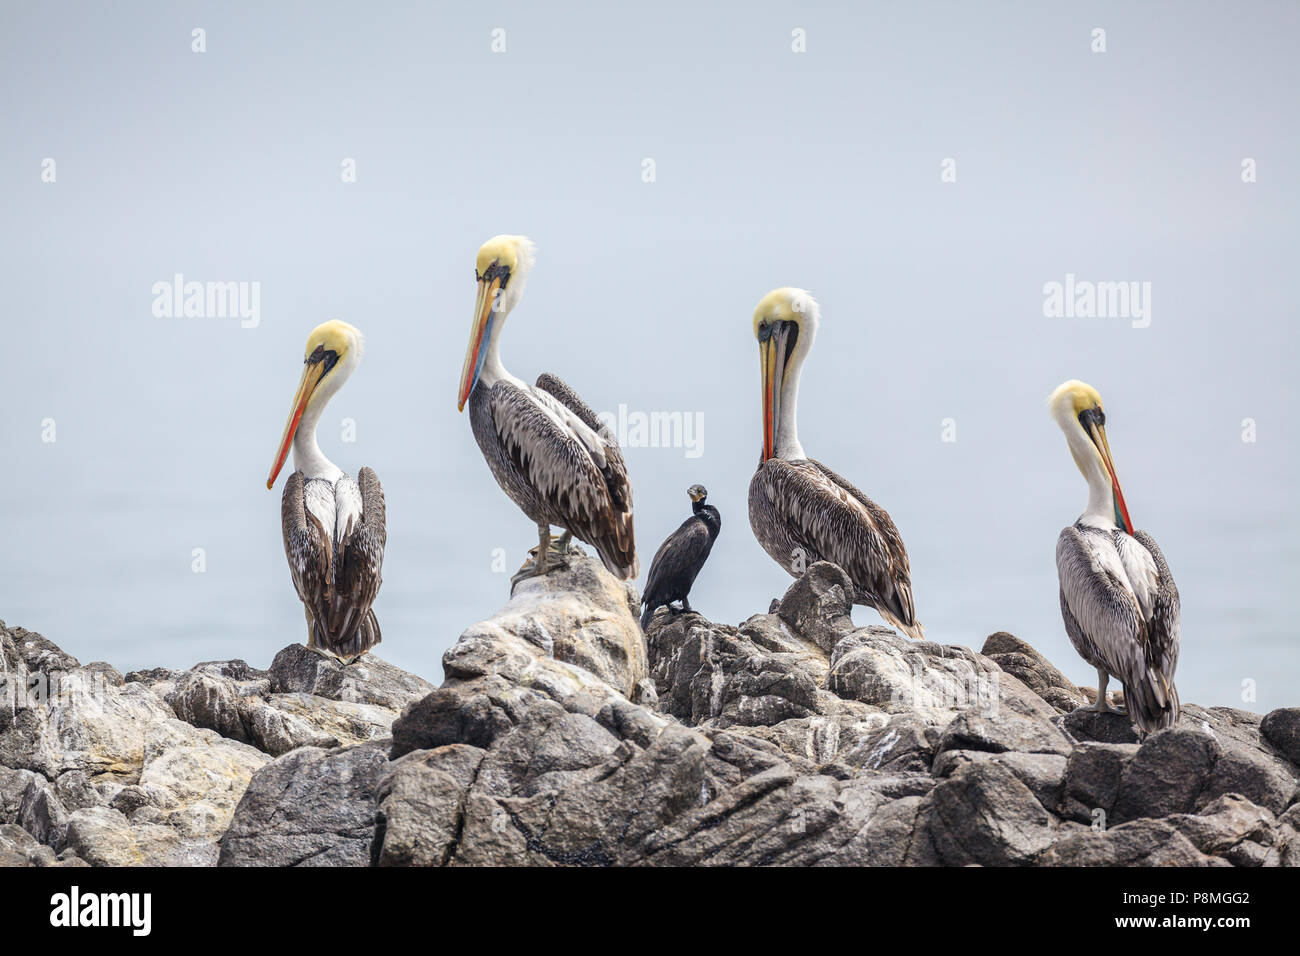 Group of four Peruvian Pelicans and one Neotropic Cormorant on a rock - Stock Image